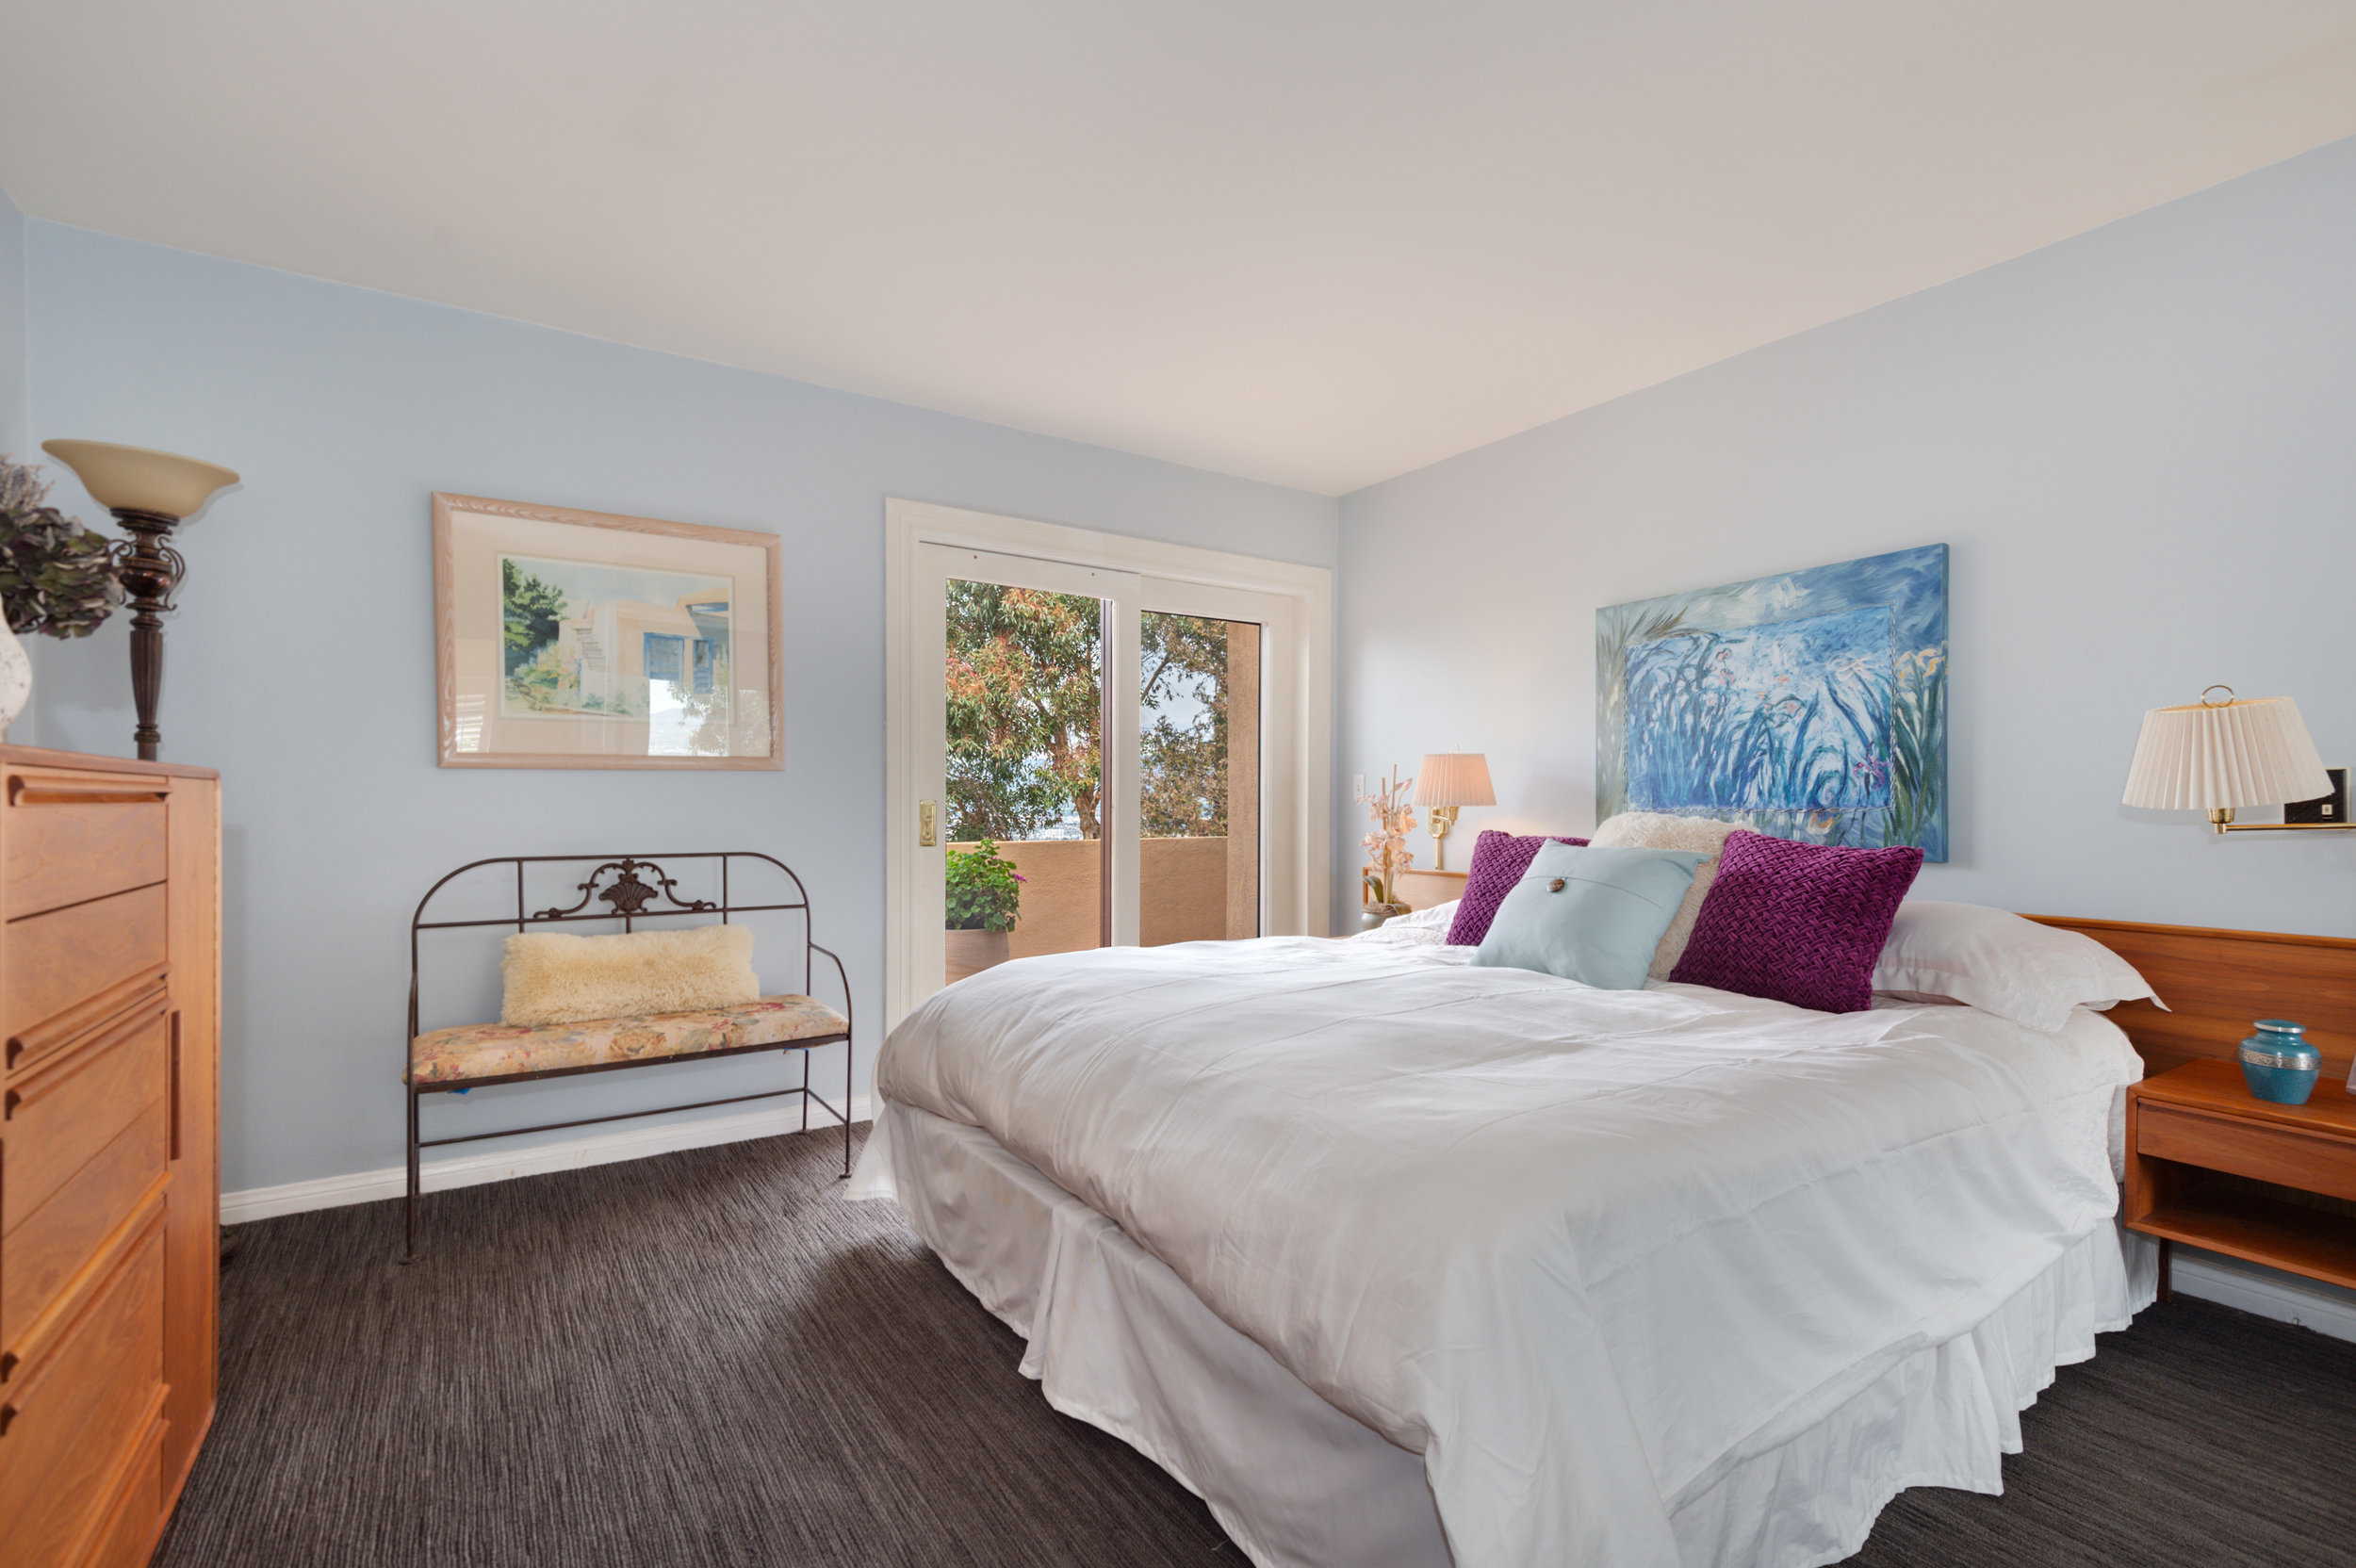 021 Bedroom 12027 Talus Place Beverly Hills 90210 For Sale Lease The Malibu Life Team Luxury Real Estate.jpg